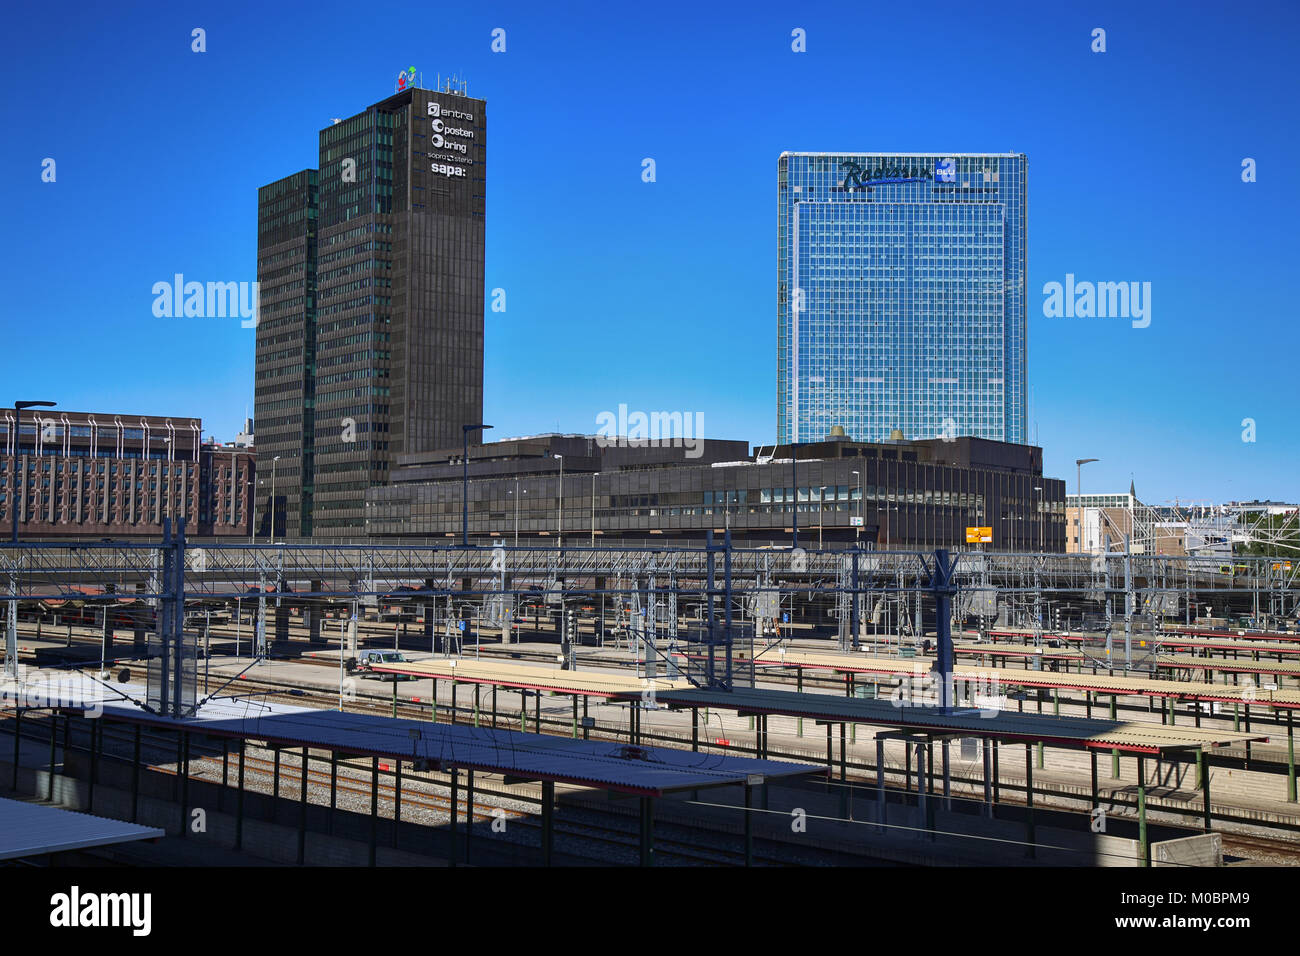 OSLO, NORWAY – AUGUST 17, 2016: View on railway tracks and modern buildings Posthuset 'Postgirobygget' Radisson - Stock Image